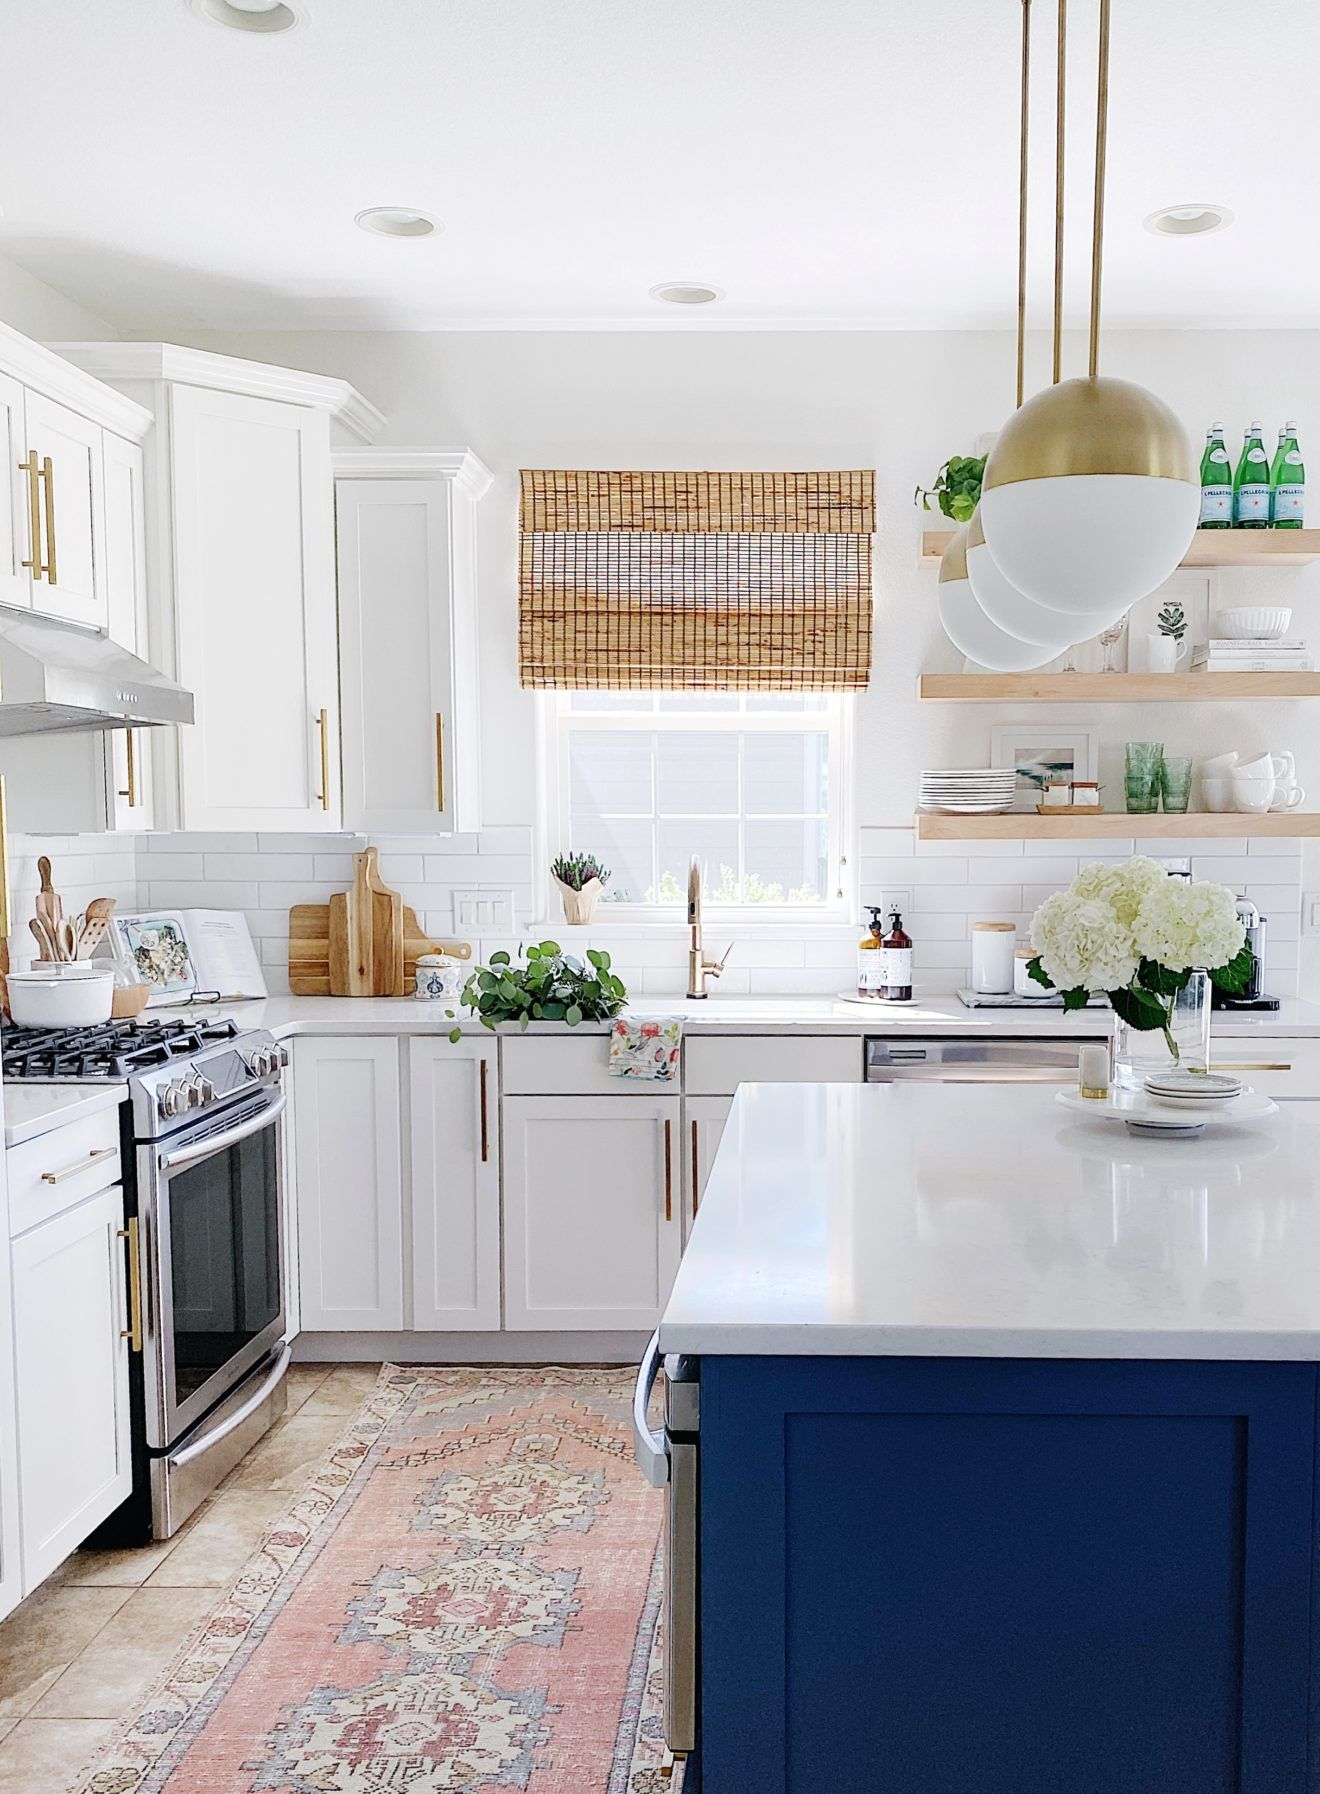 Kitchen Island Lighting Ideas For Every Style Budget Kitchen Lighting Design Kitchen Design Kitchen Lighting